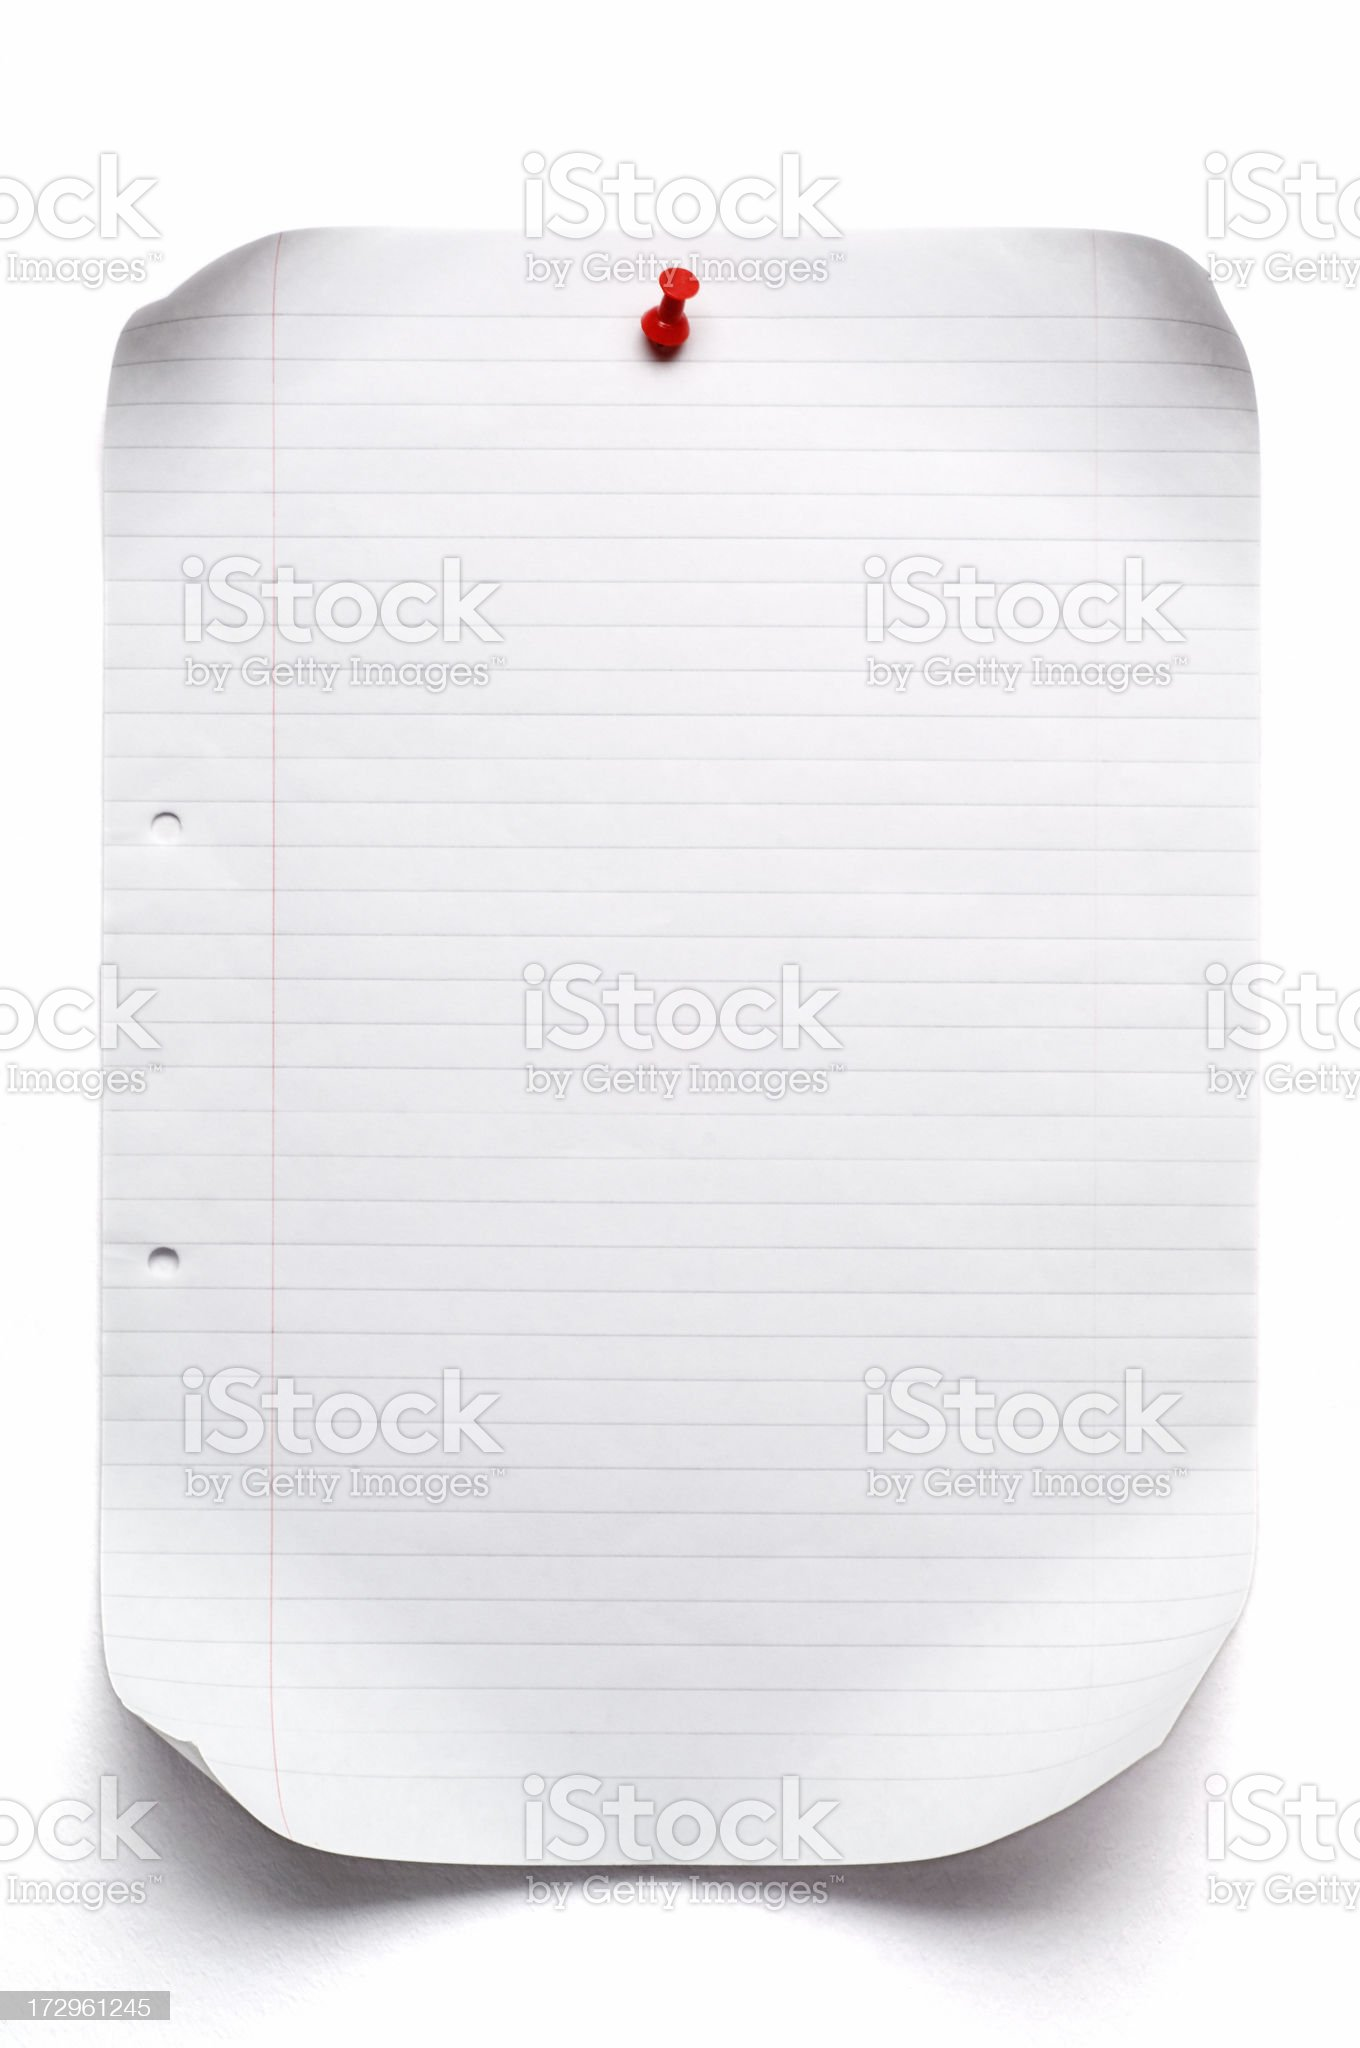 isolated sheet of lined paper royalty-free stock photo